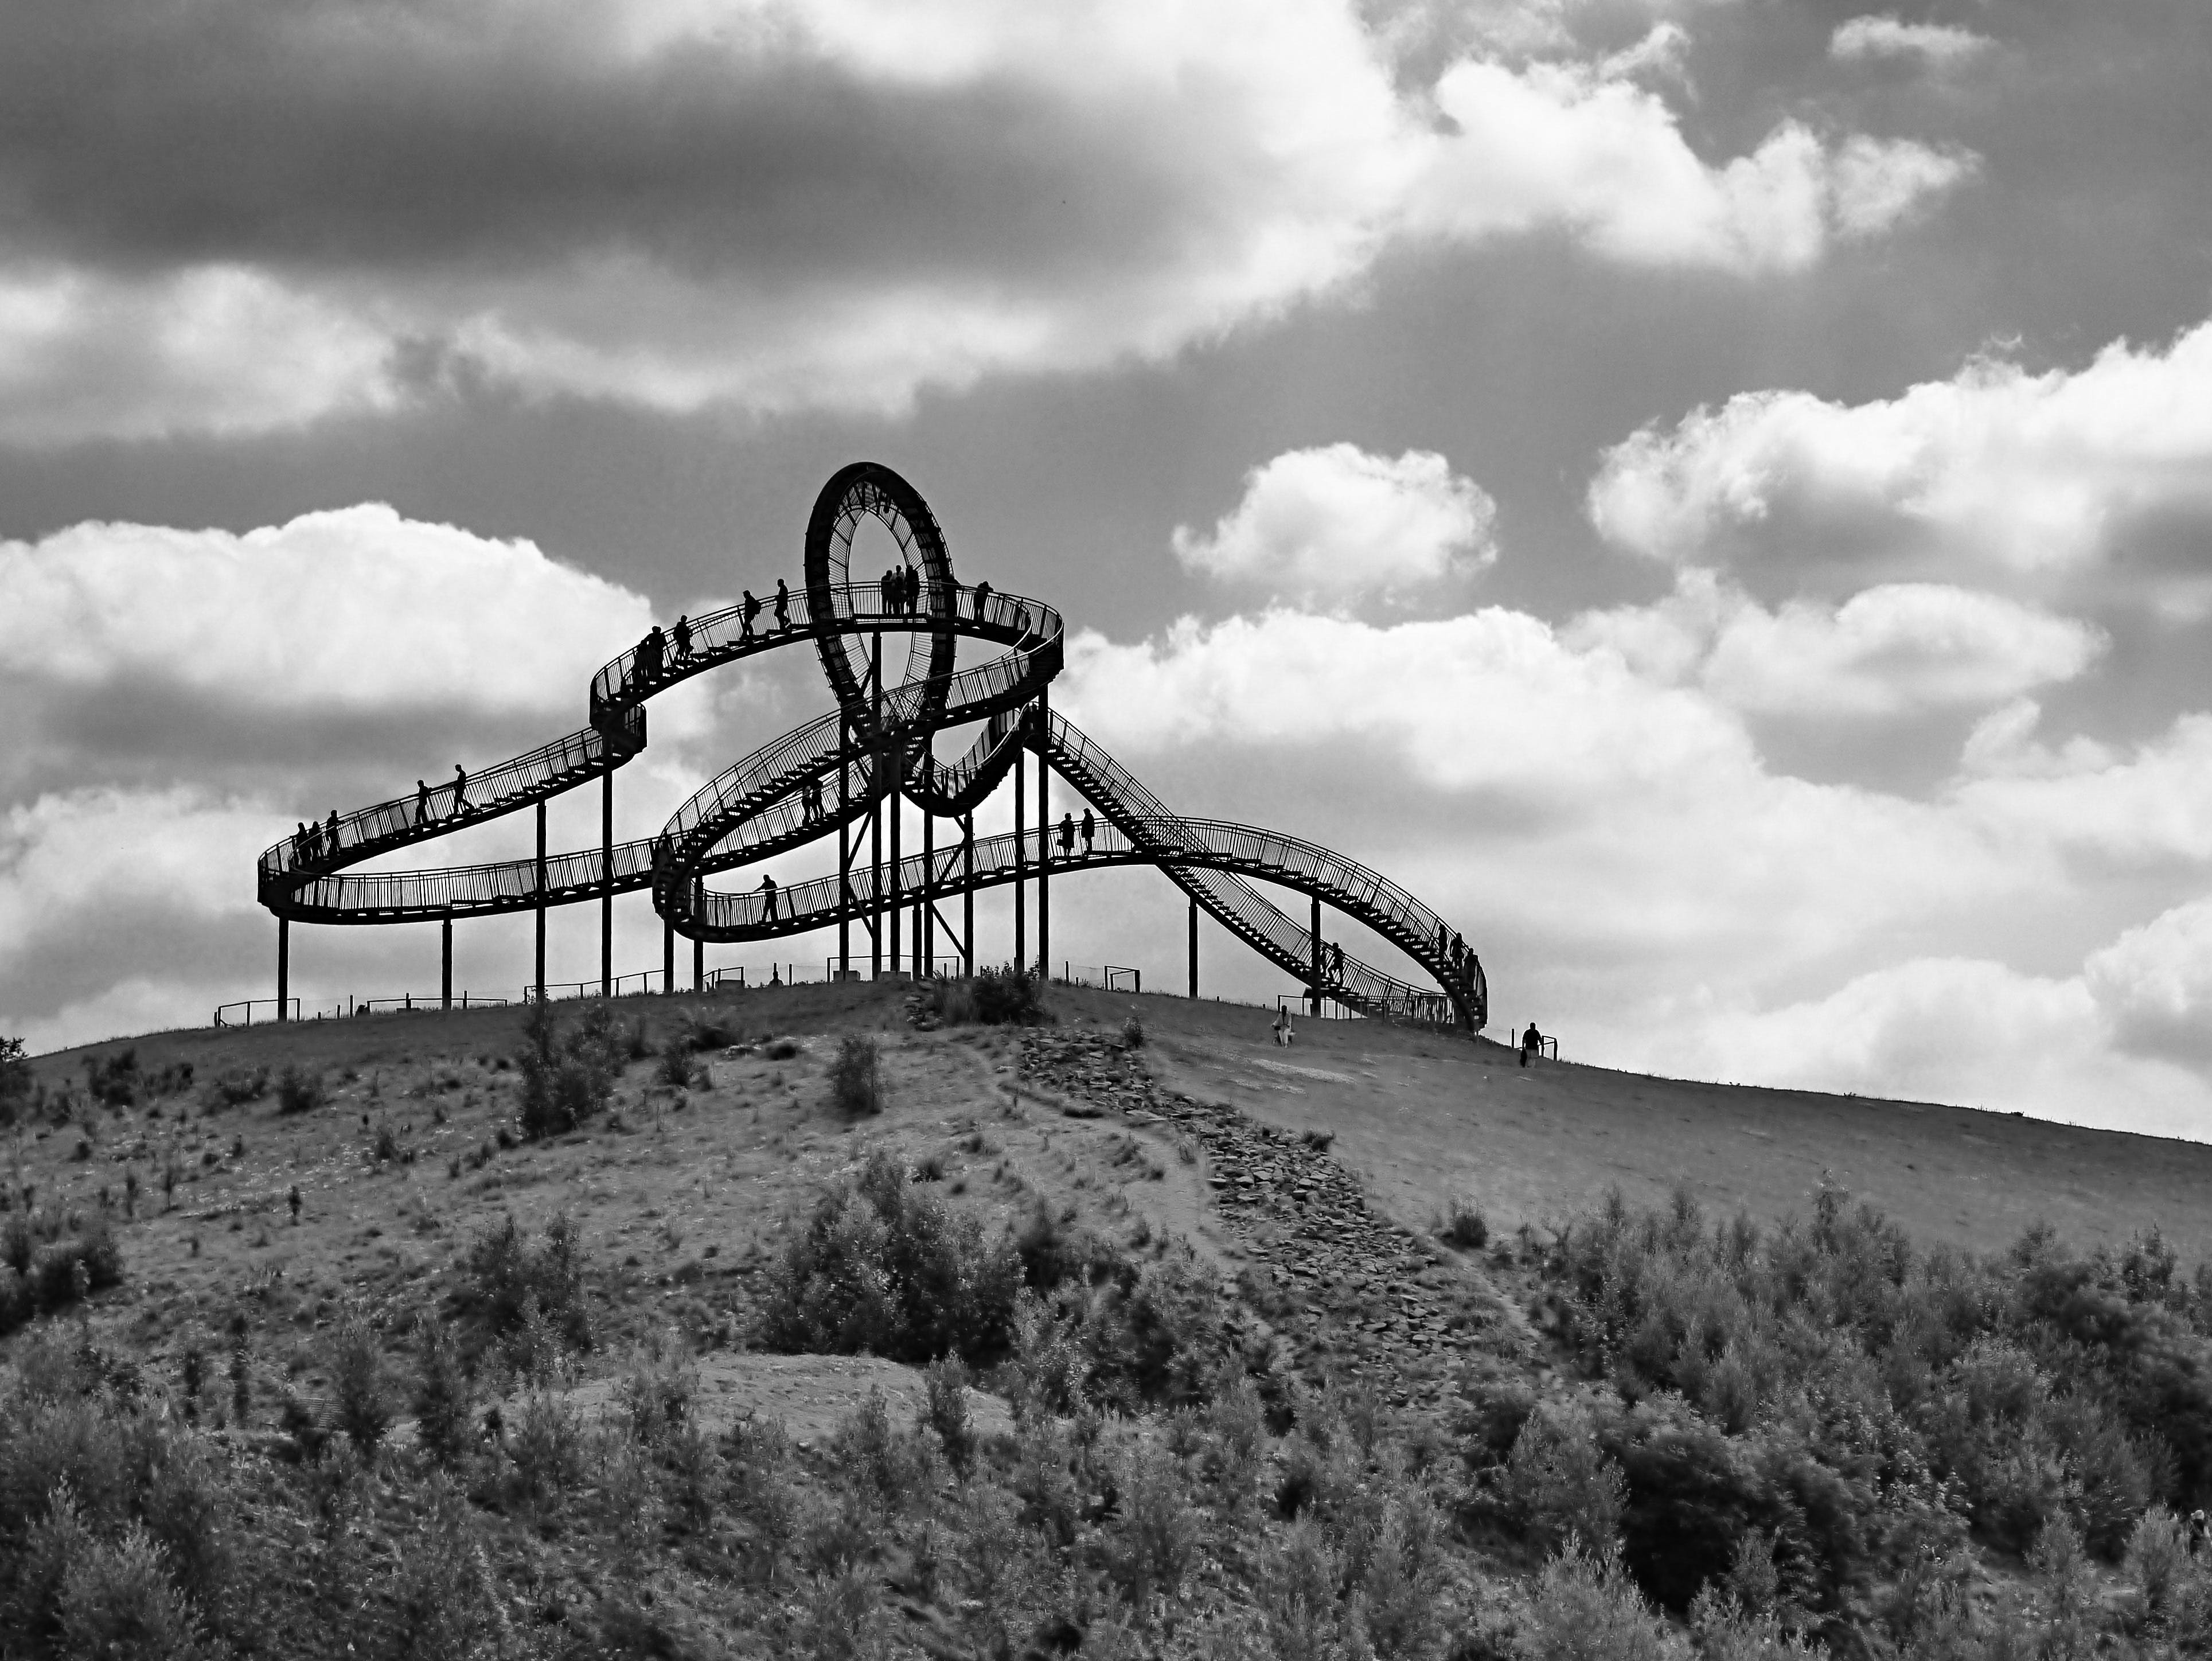 Black Roller Coaster in Grey Scale Photography